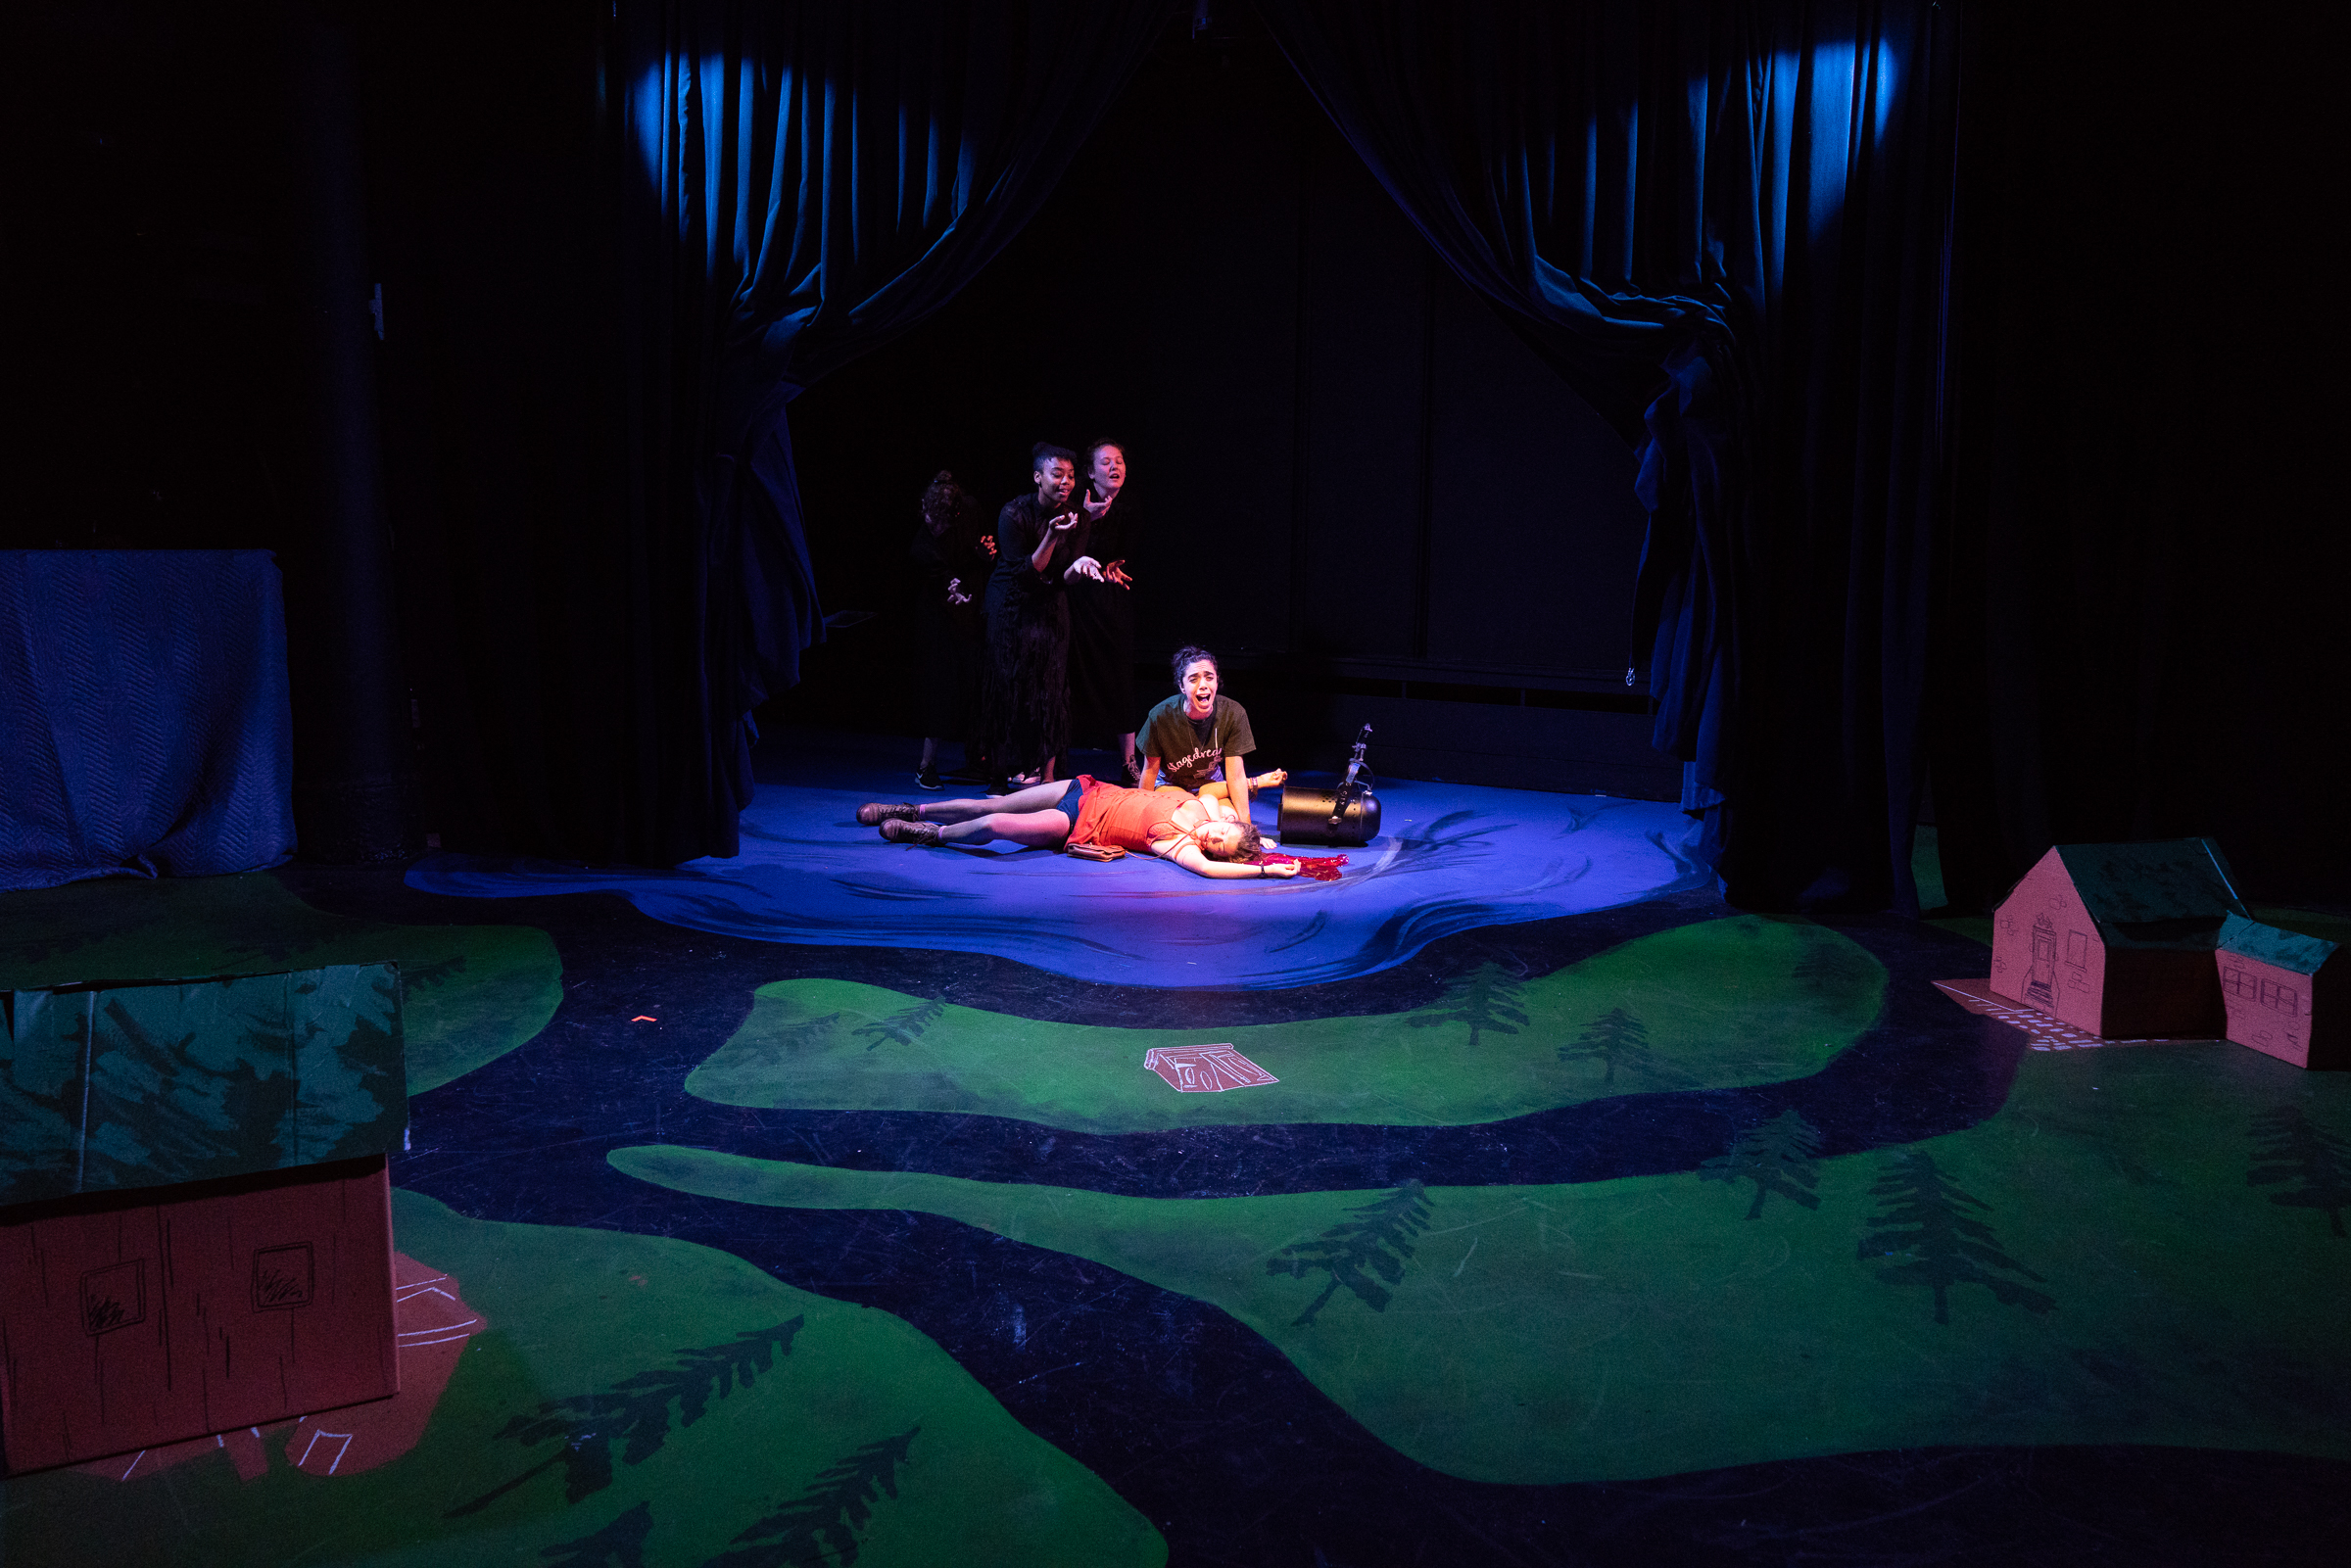 Stagedream   Playwrights Horizons Downtown, Fall 2018  Written by Jenny Rachel Weiner and Lee Overtree  Music by Helen Park  Lyrics by Max Vernon  Directed by Lee Overtree  Photo: Elke Young